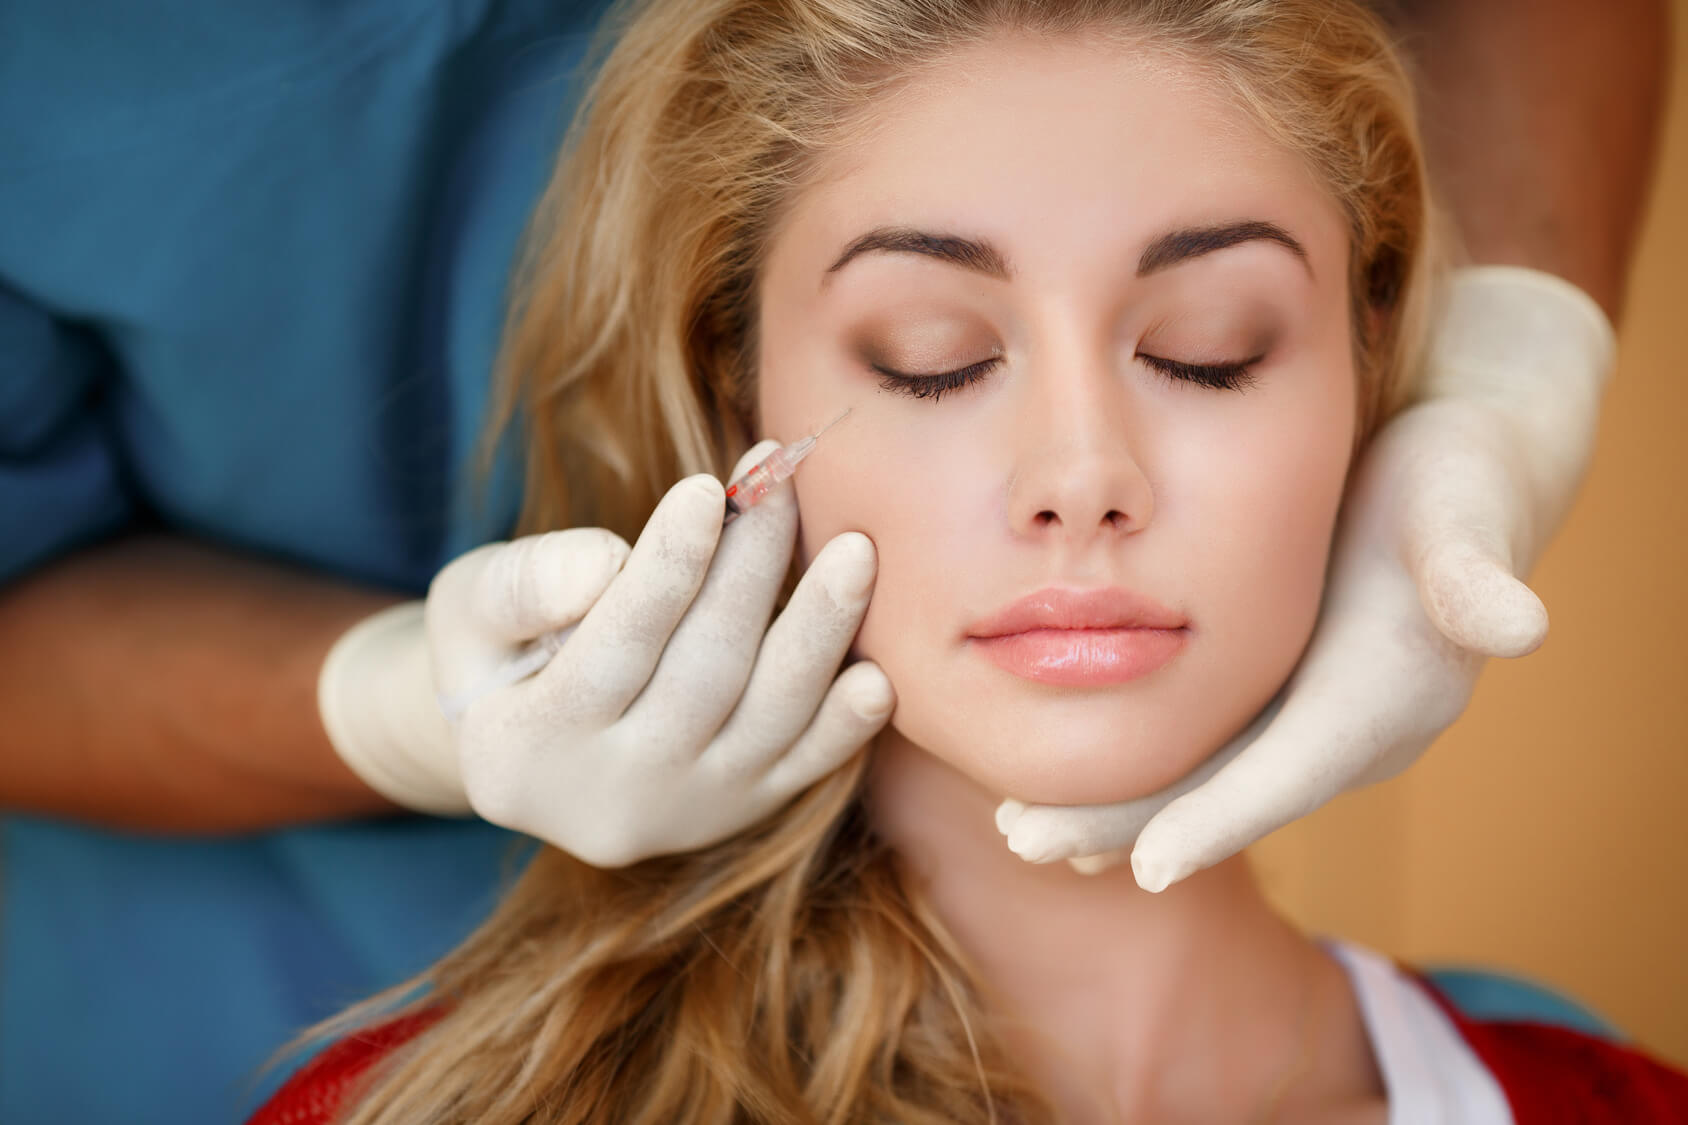 Lady having Botox injection at the dentist